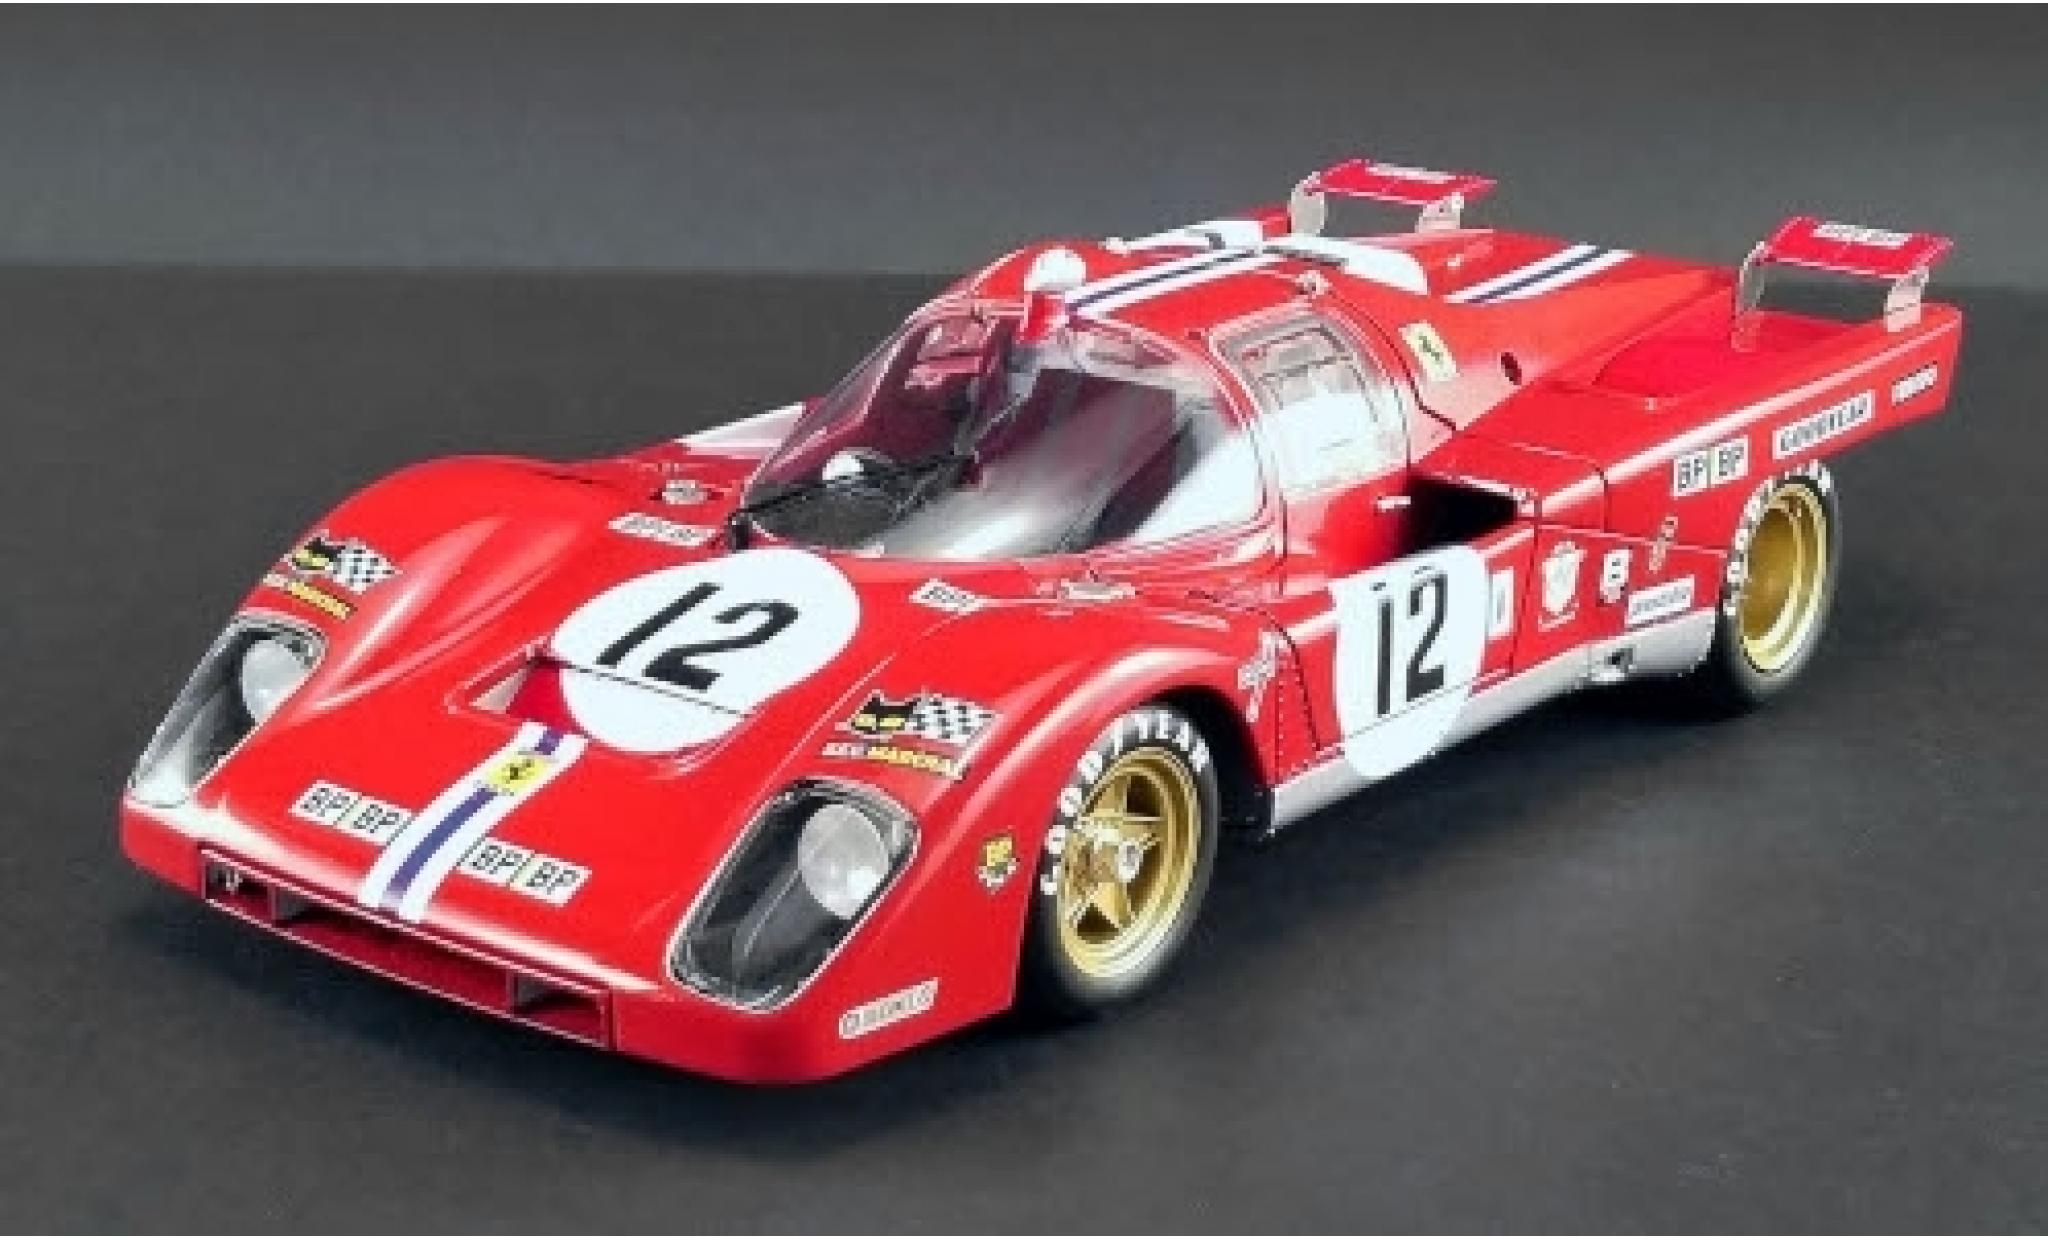 Ferrari 512 1/18 GMP ACME M RHD No.12 N.A.R.T. - North American Racing Team 24h Le Mans 1971 Masterpiece Collection S.Posey/T.Adamowicz